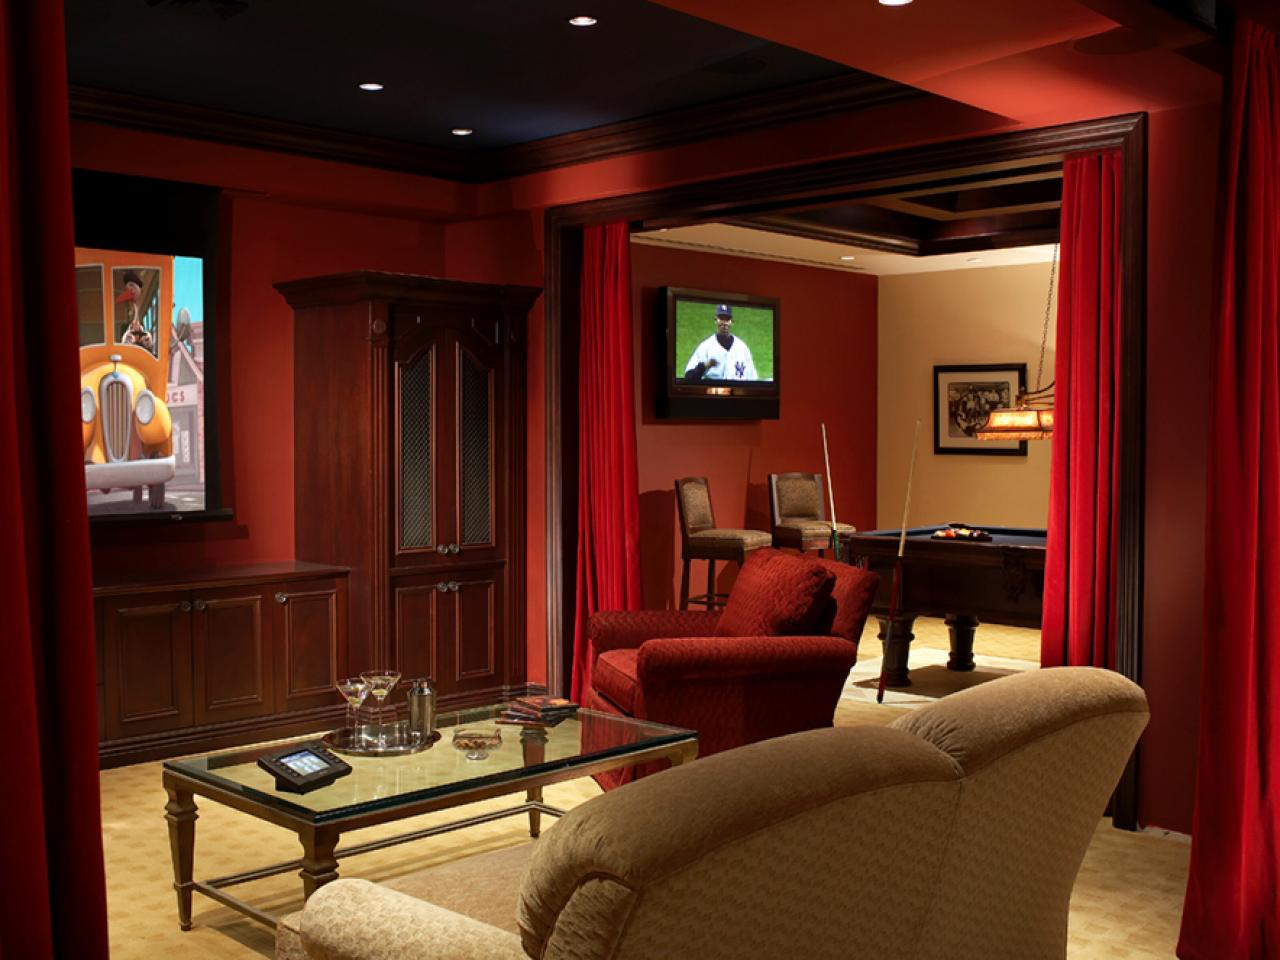 media room design ideas decorating and design ideas for interior